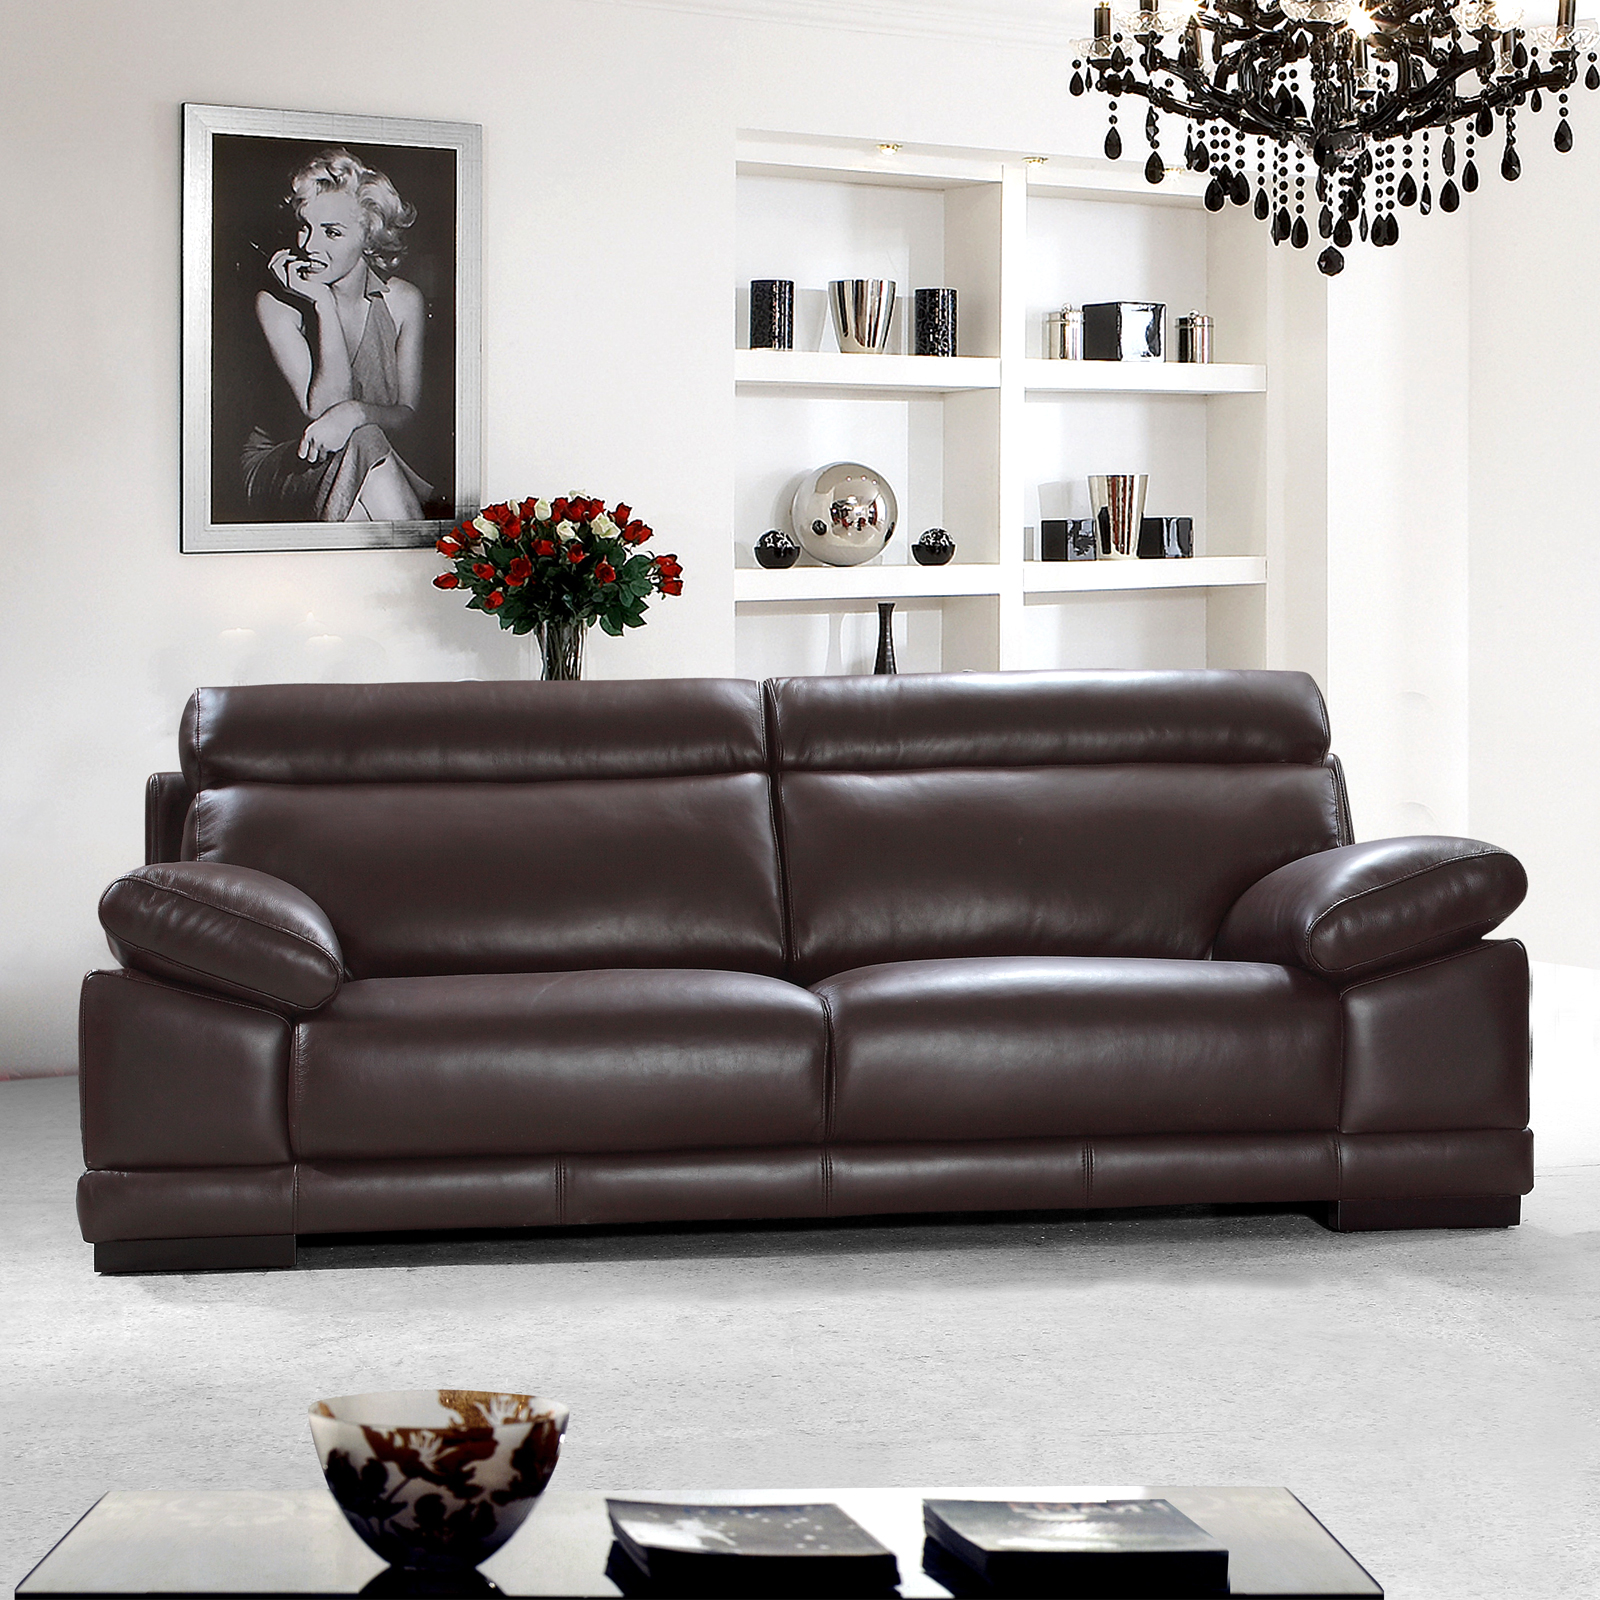 Phenomenal Chesterfield In Black Leather Sofa Set China Import Leather Sofa Buy Cheap Chesterfield Sofa Chesterfield Corner Leather Sofa Used Chesterfield Sofa Gmtry Best Dining Table And Chair Ideas Images Gmtryco